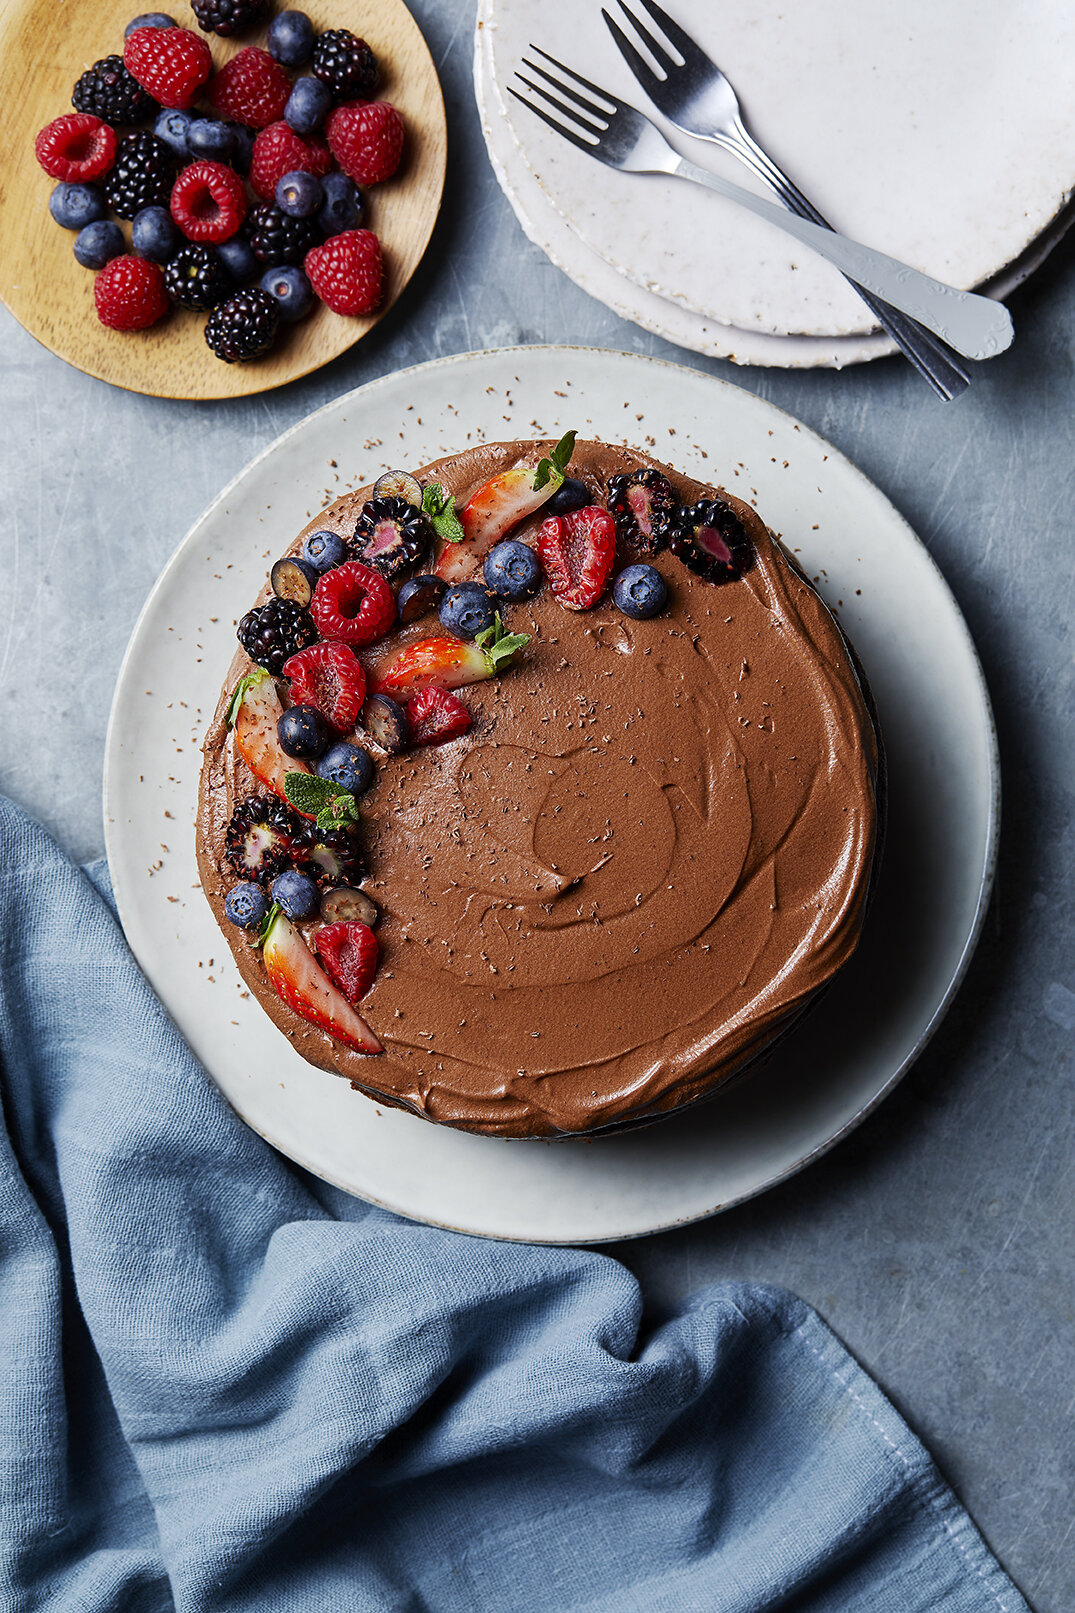 Vegan chocolate cake Portrait.jpg